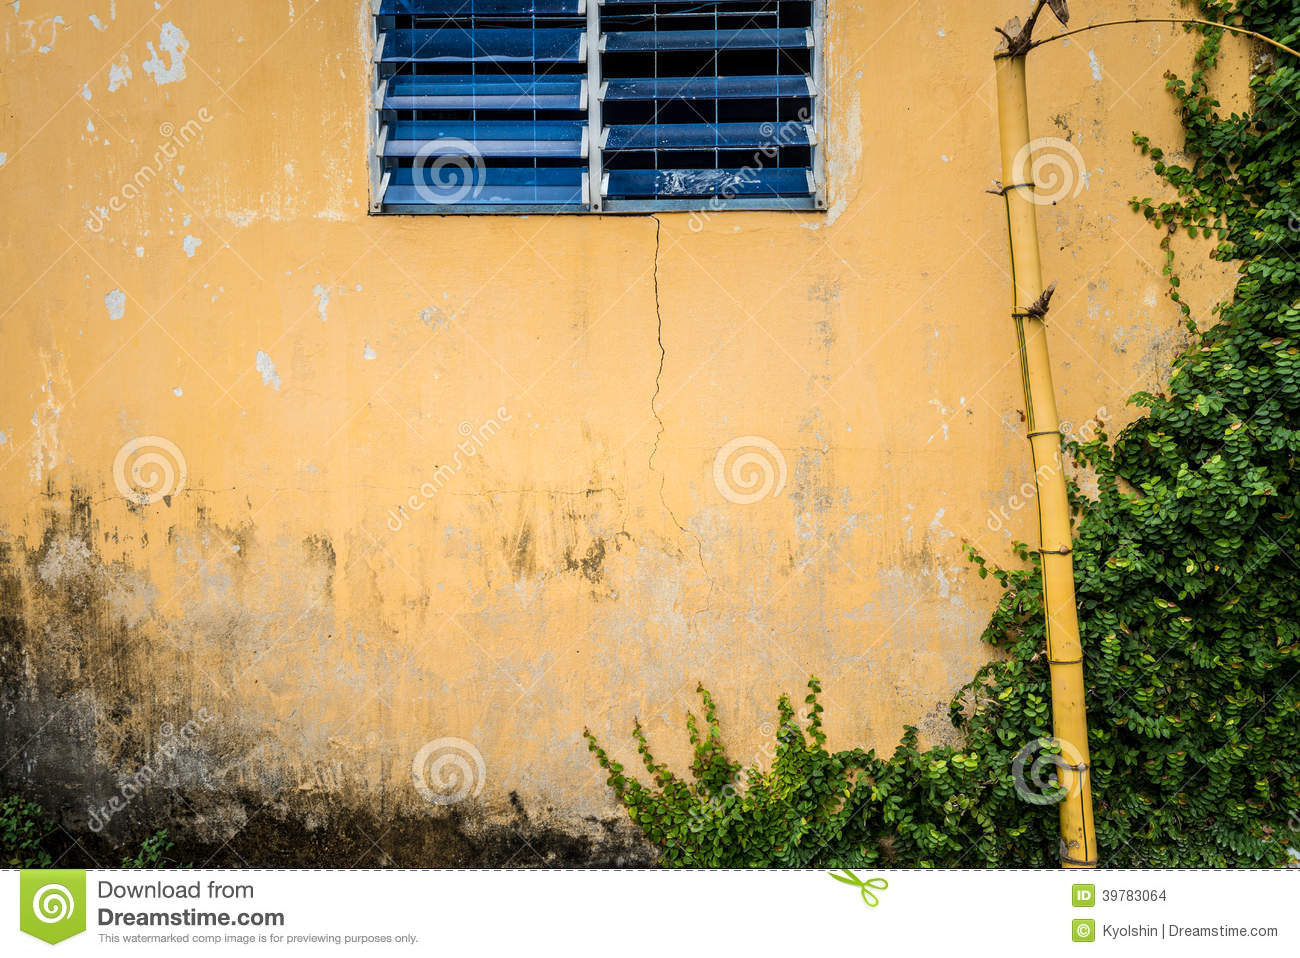 Grungy wall with window, bamboo and greenery.